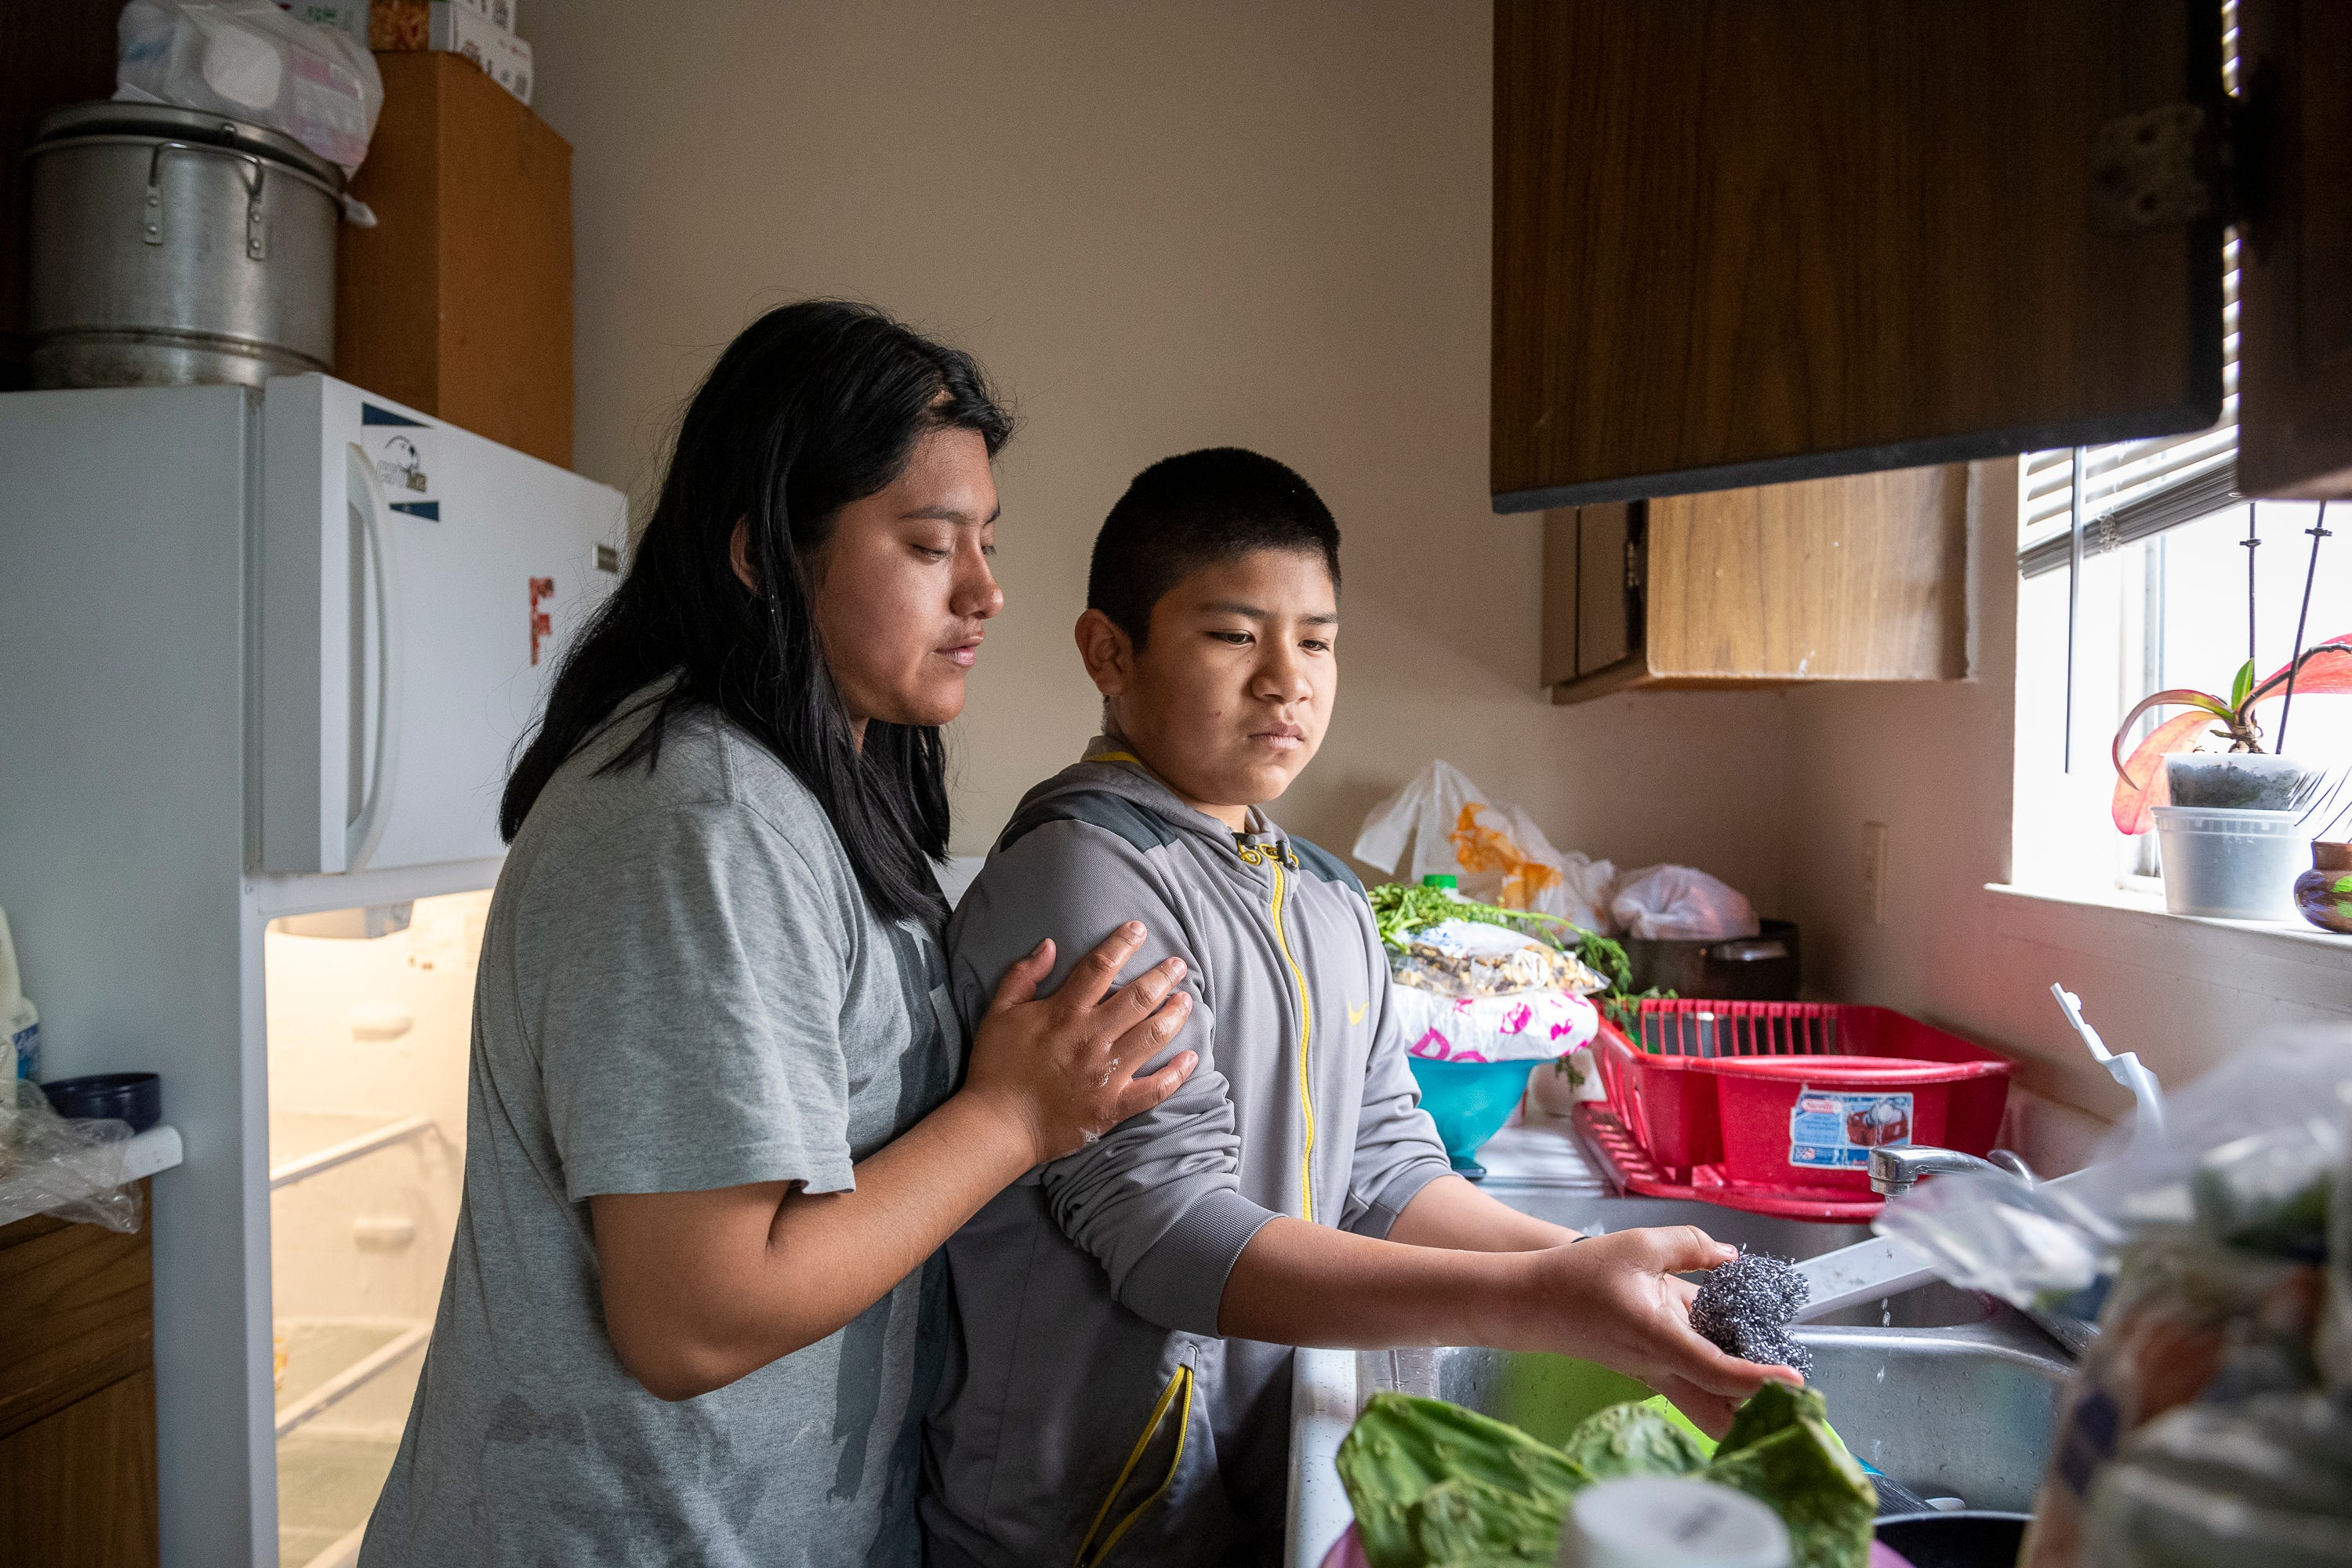 Resi Salvador, 19, left, rests her hand on her brother Aldo's, 11, arm as he washes the dishes to help her clean the house before their parents come home. Resi has three brothers that she takes care of; As the oldest siblings, she and Aldo take on the most household responsibilities.